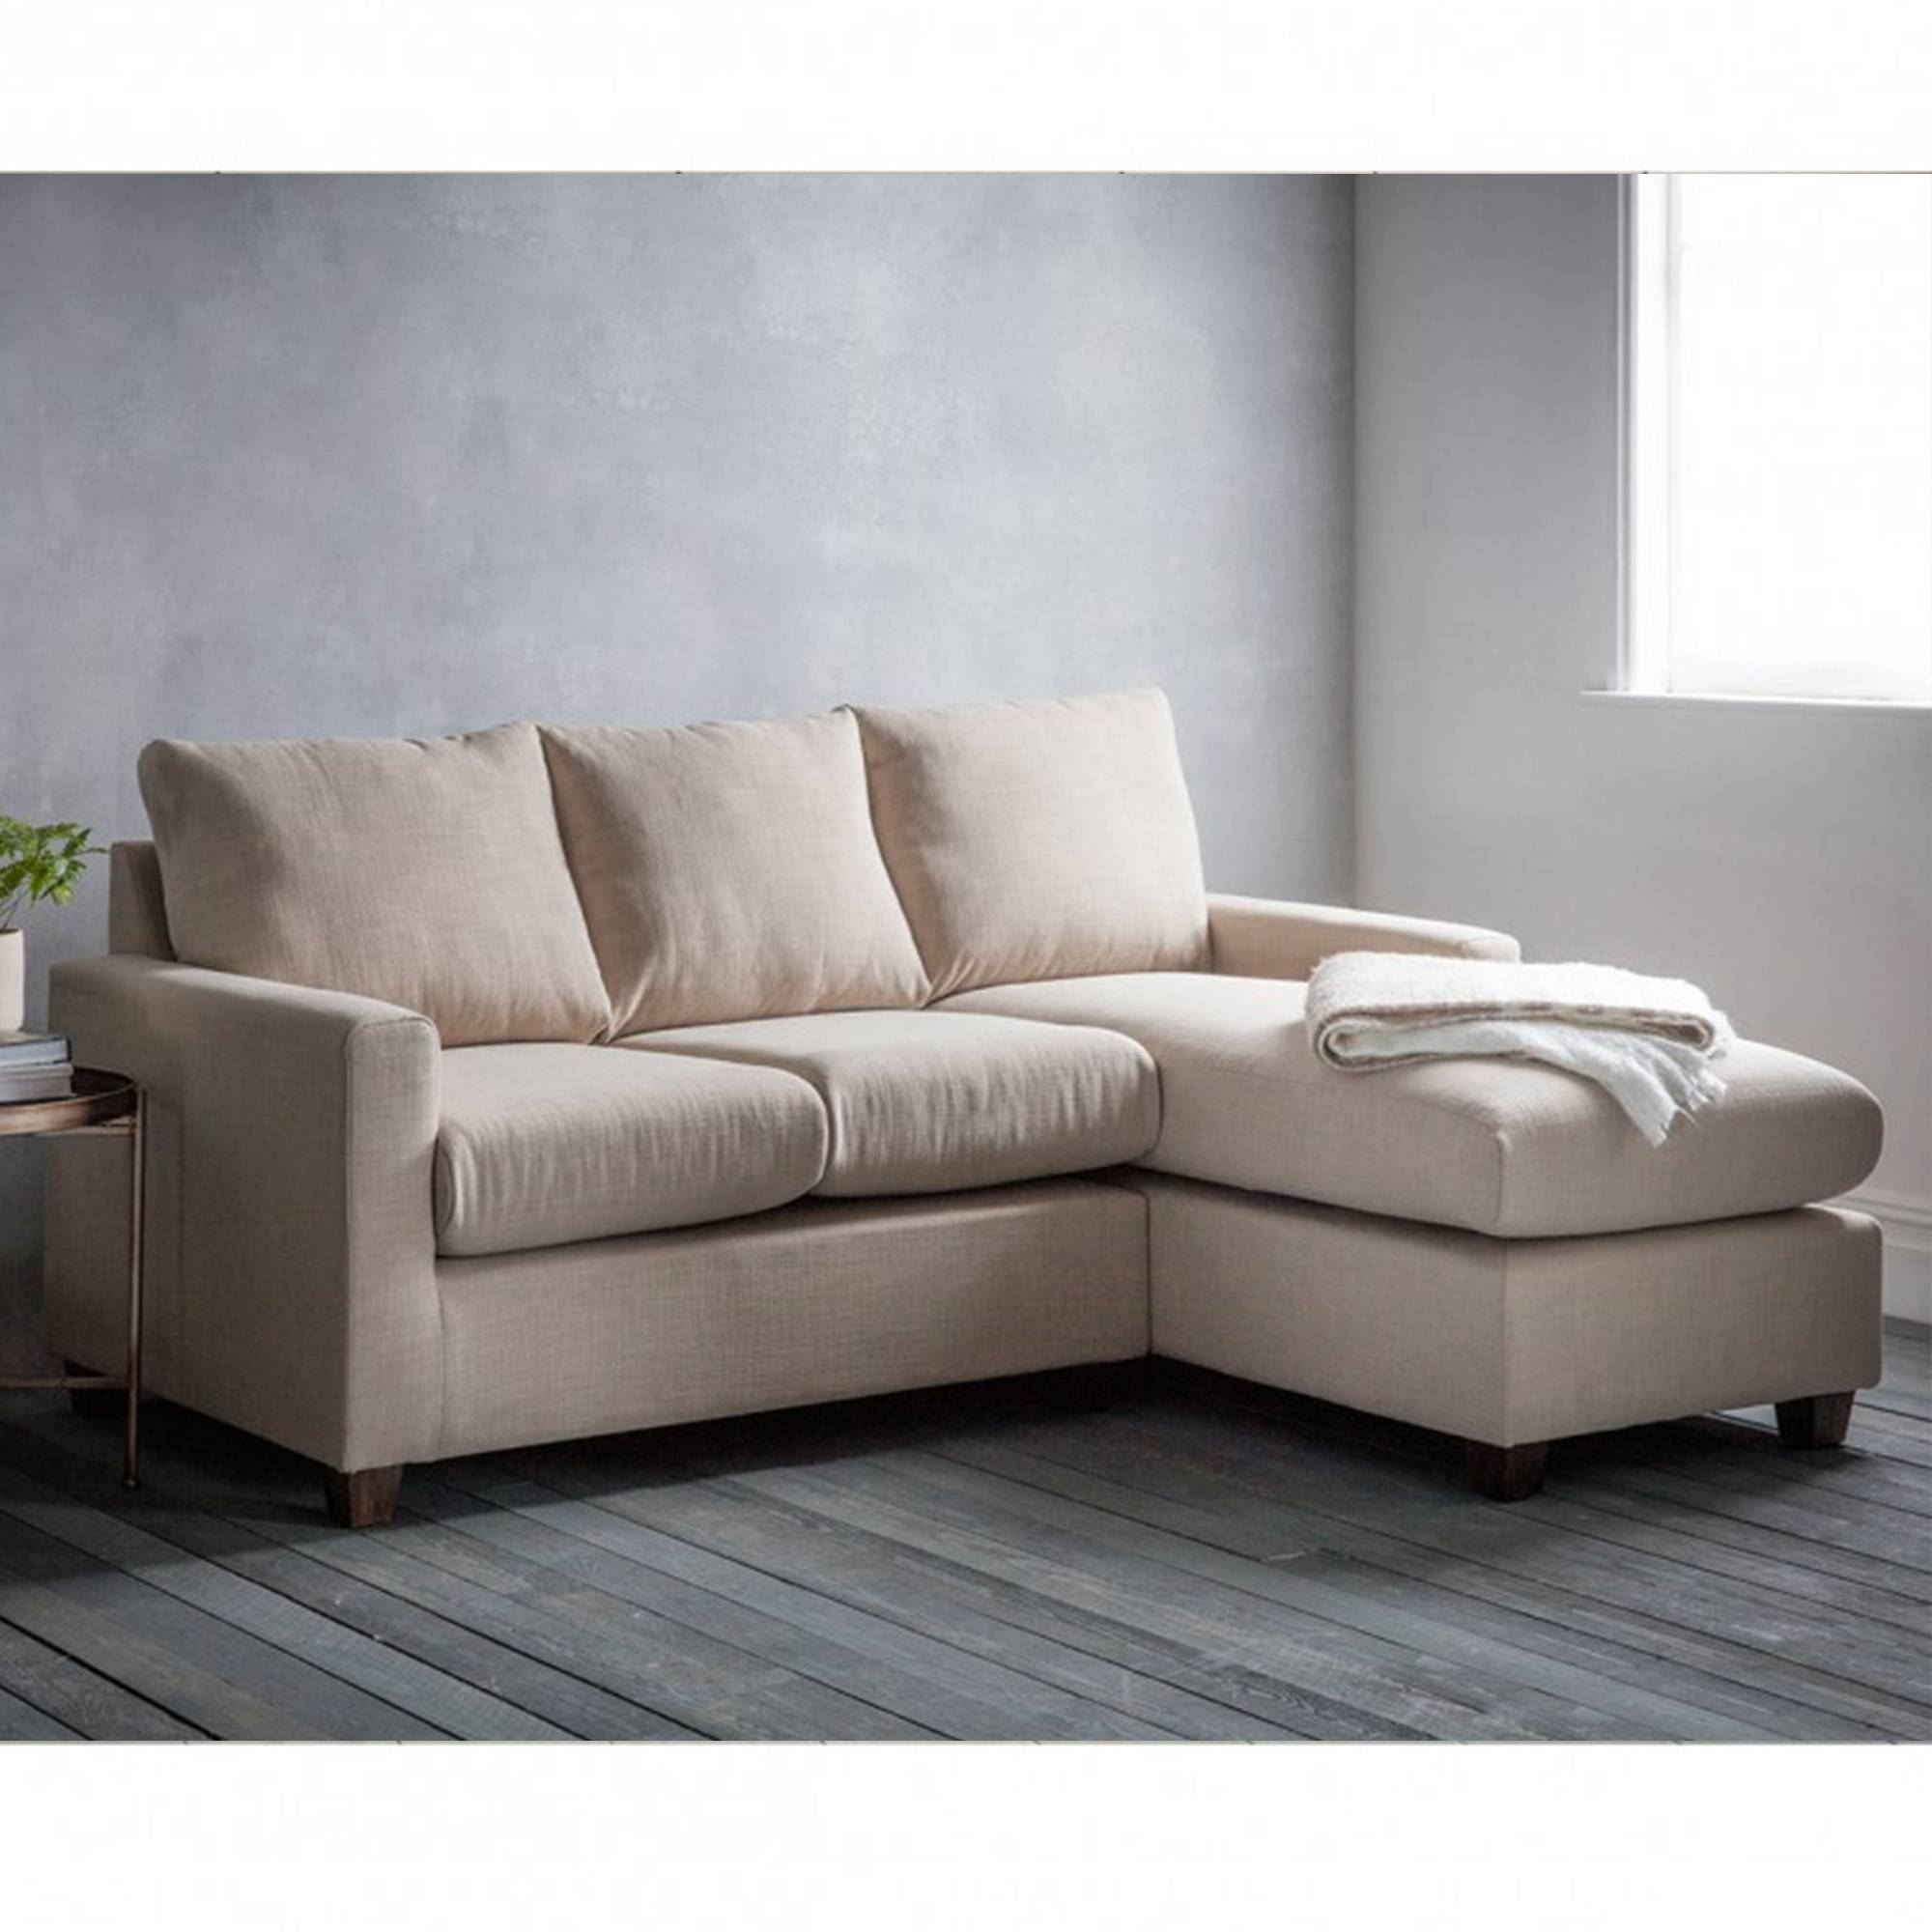 Field Beige Stratford Lh Chaise Sofa | Seating Online From regarding Stratford Sofas (Image 9 of 30)